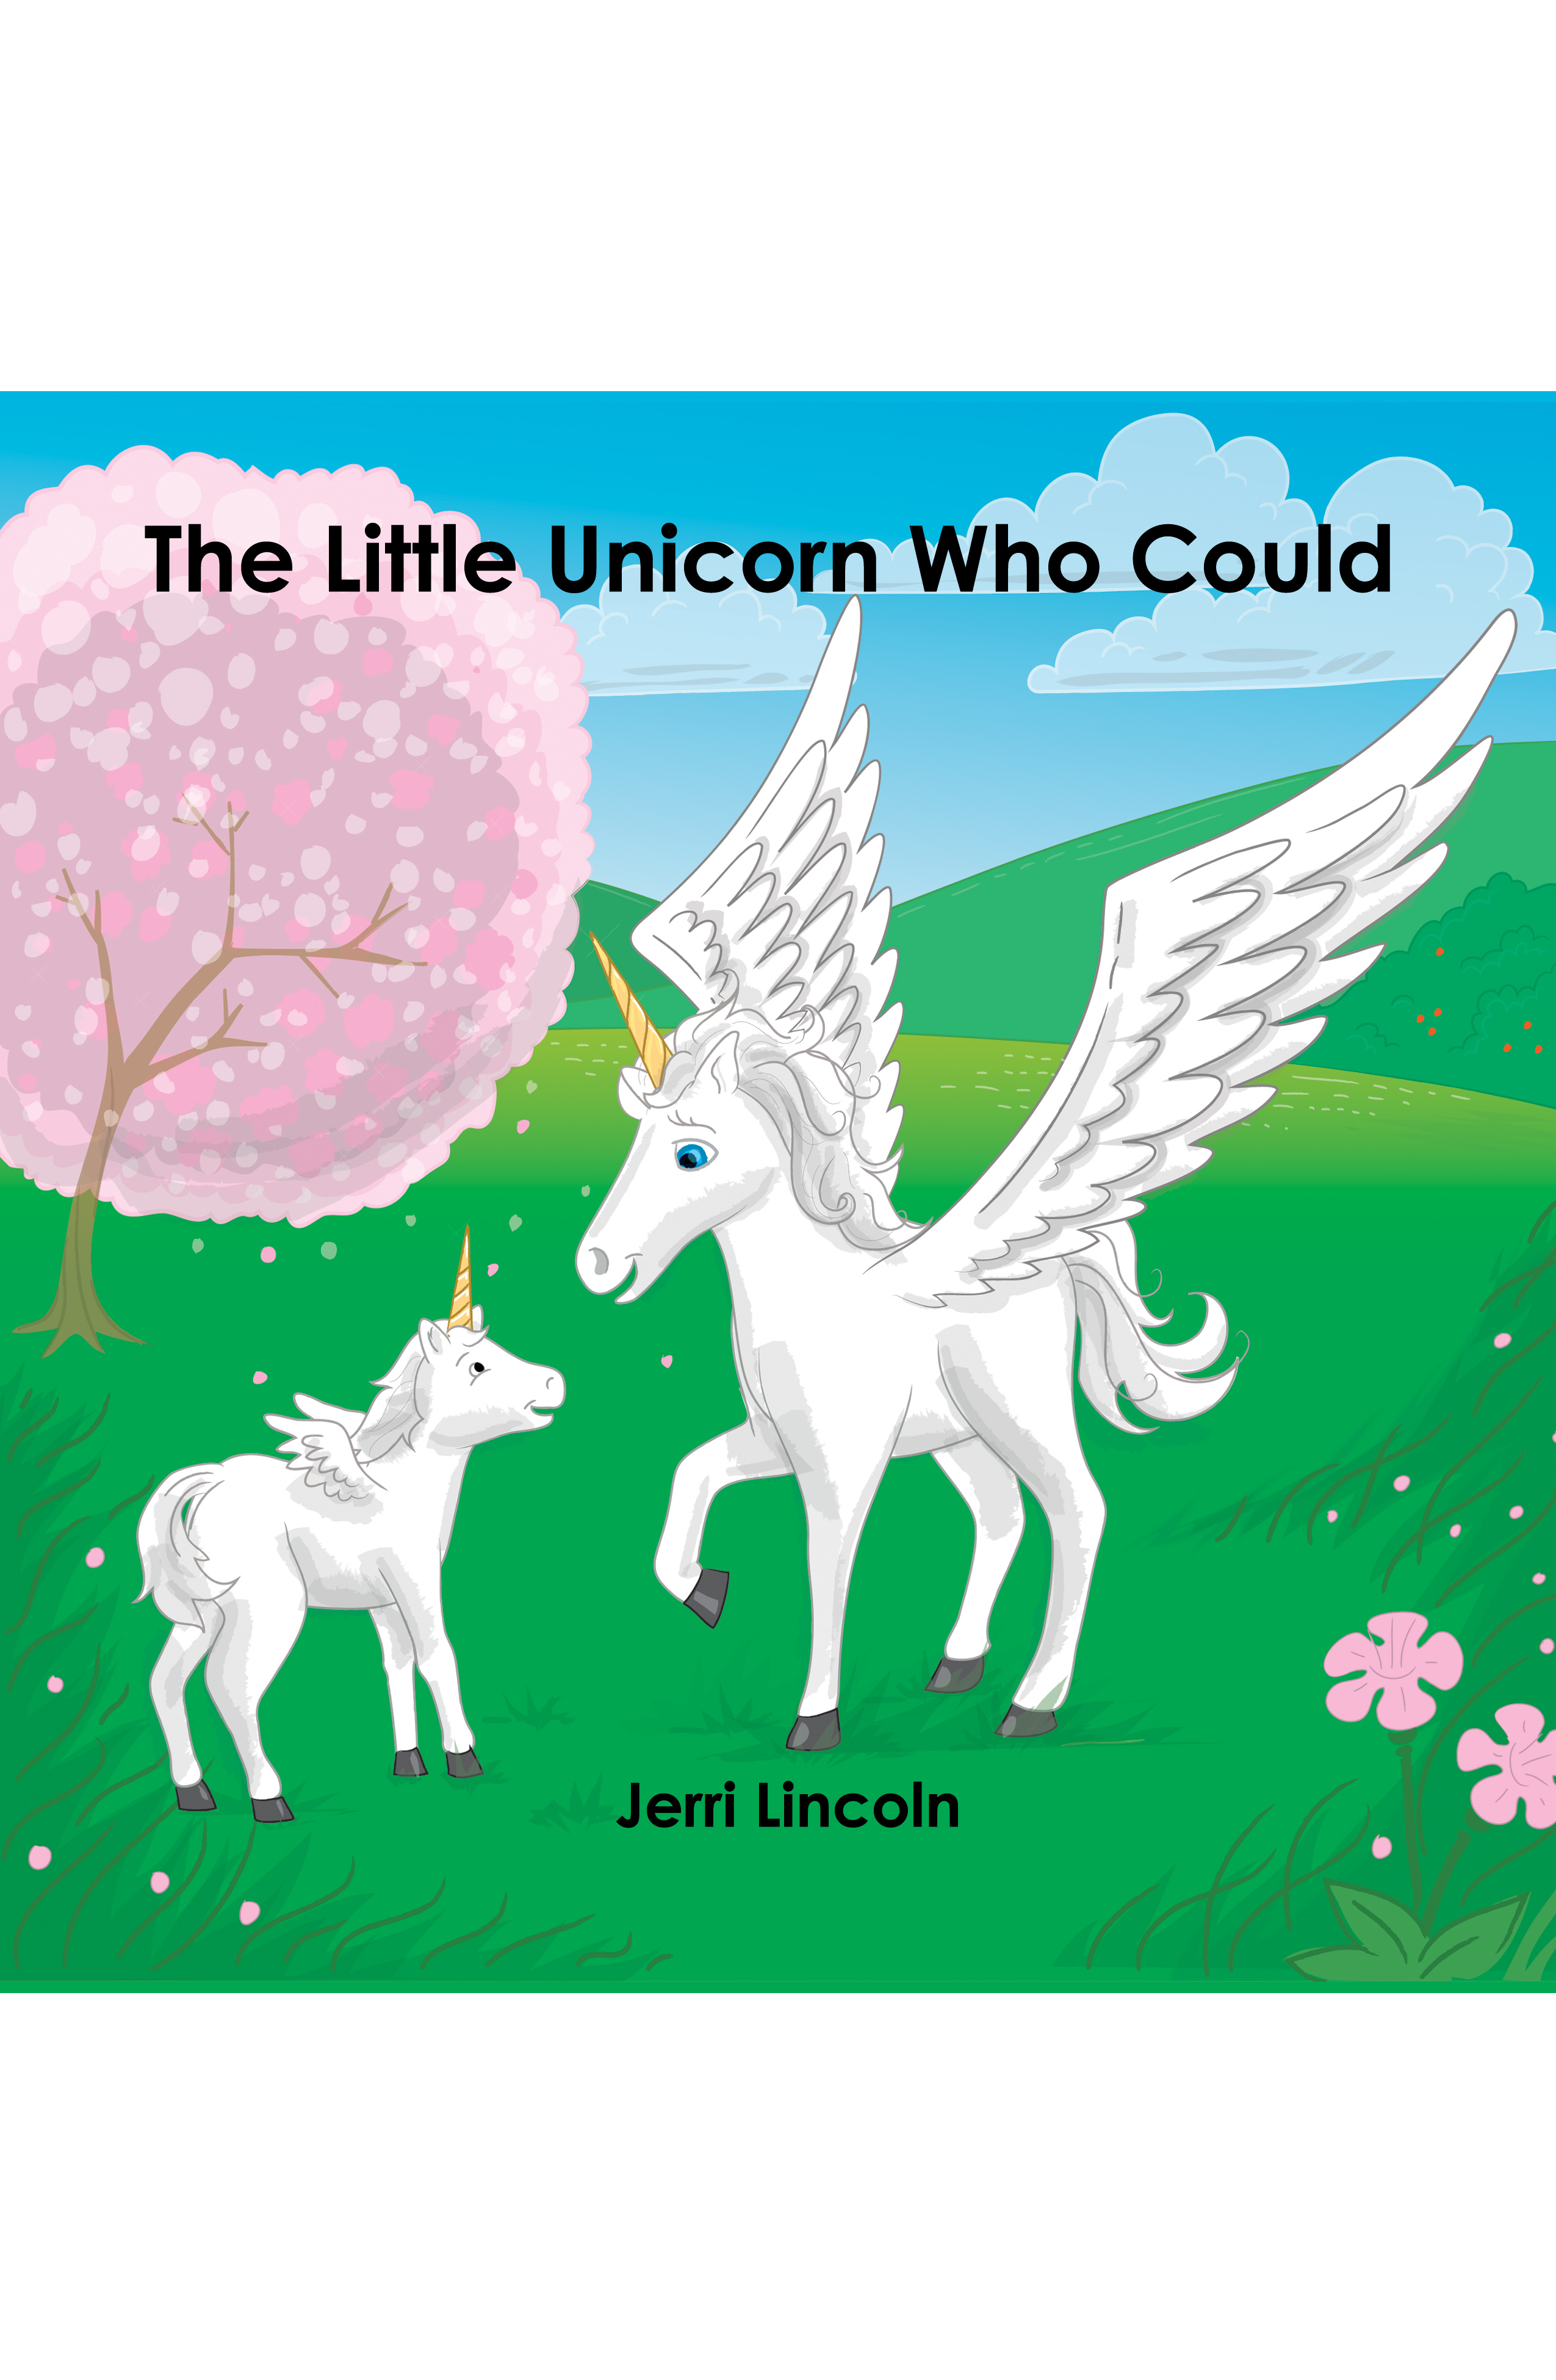 The Little Unicorn Who Could